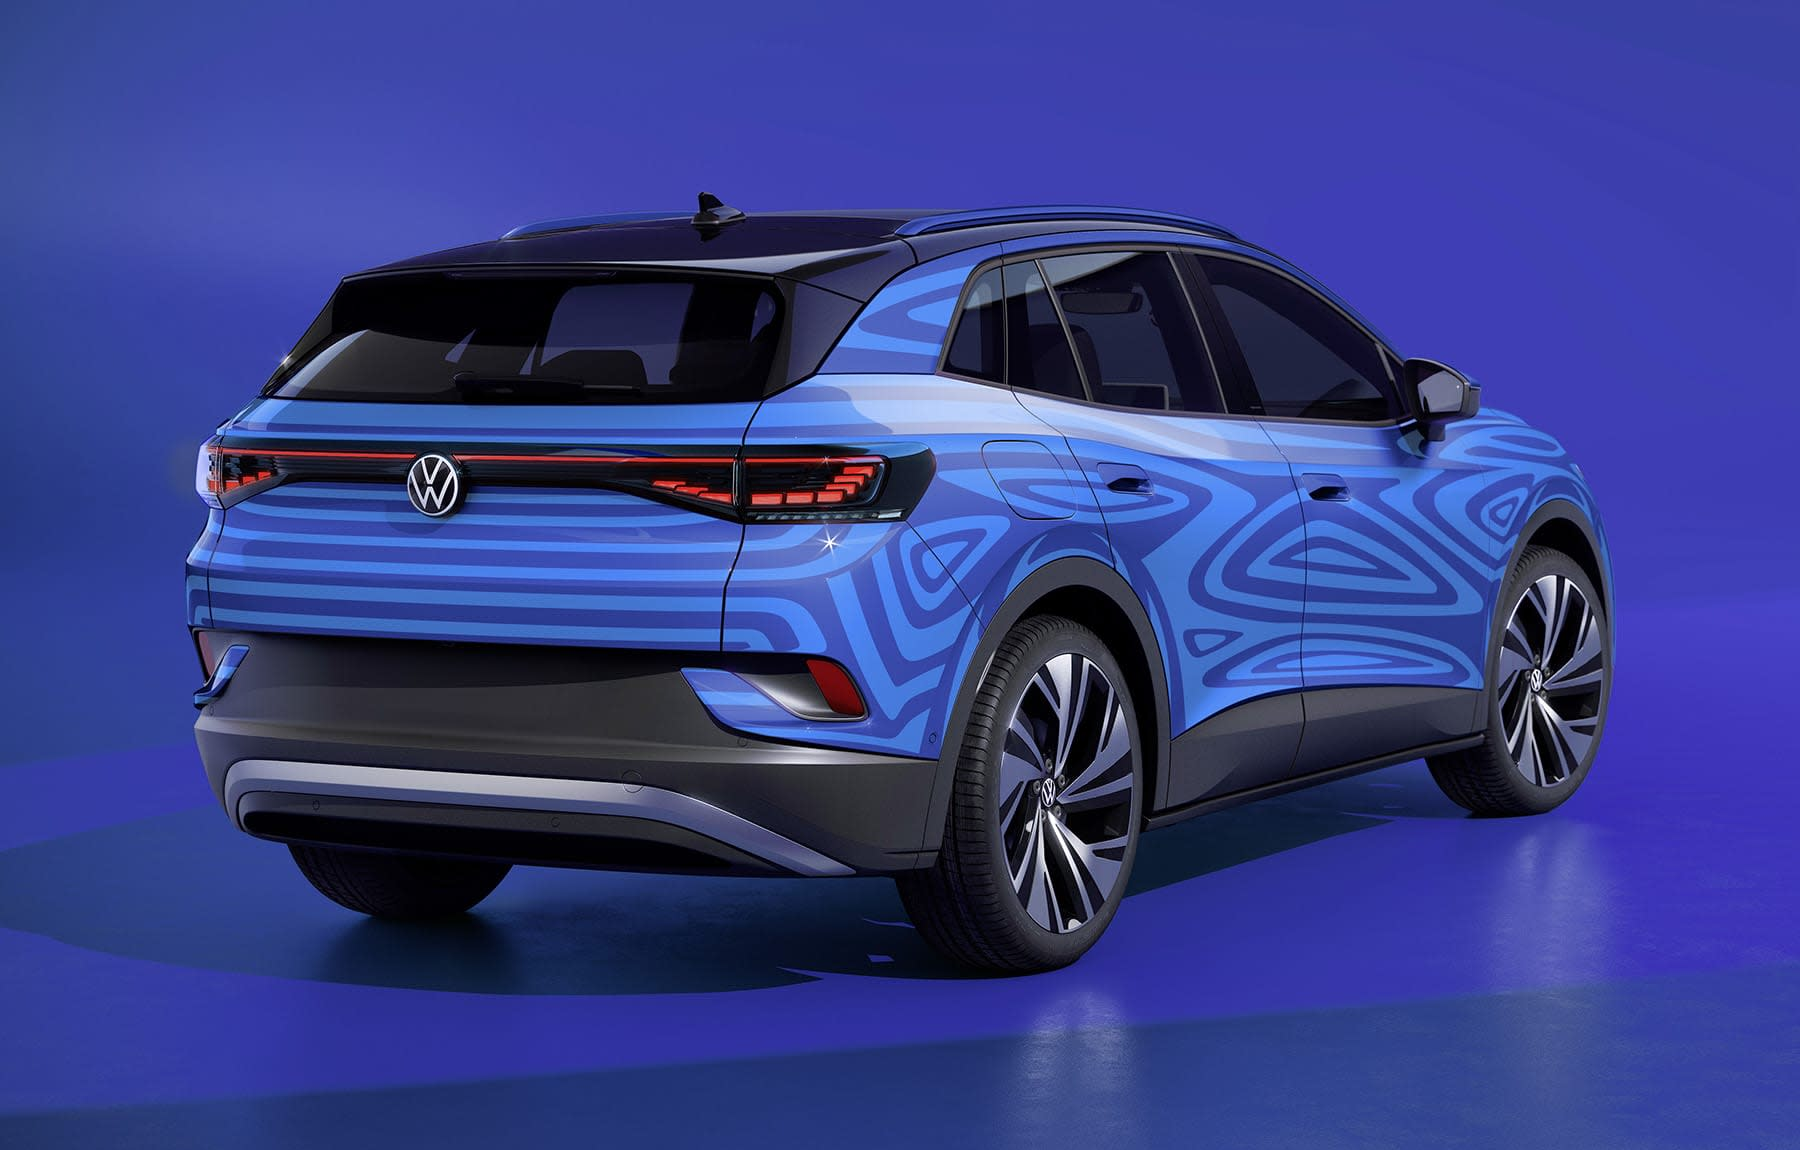 Volkswagen ID.4 crossover EV electric car